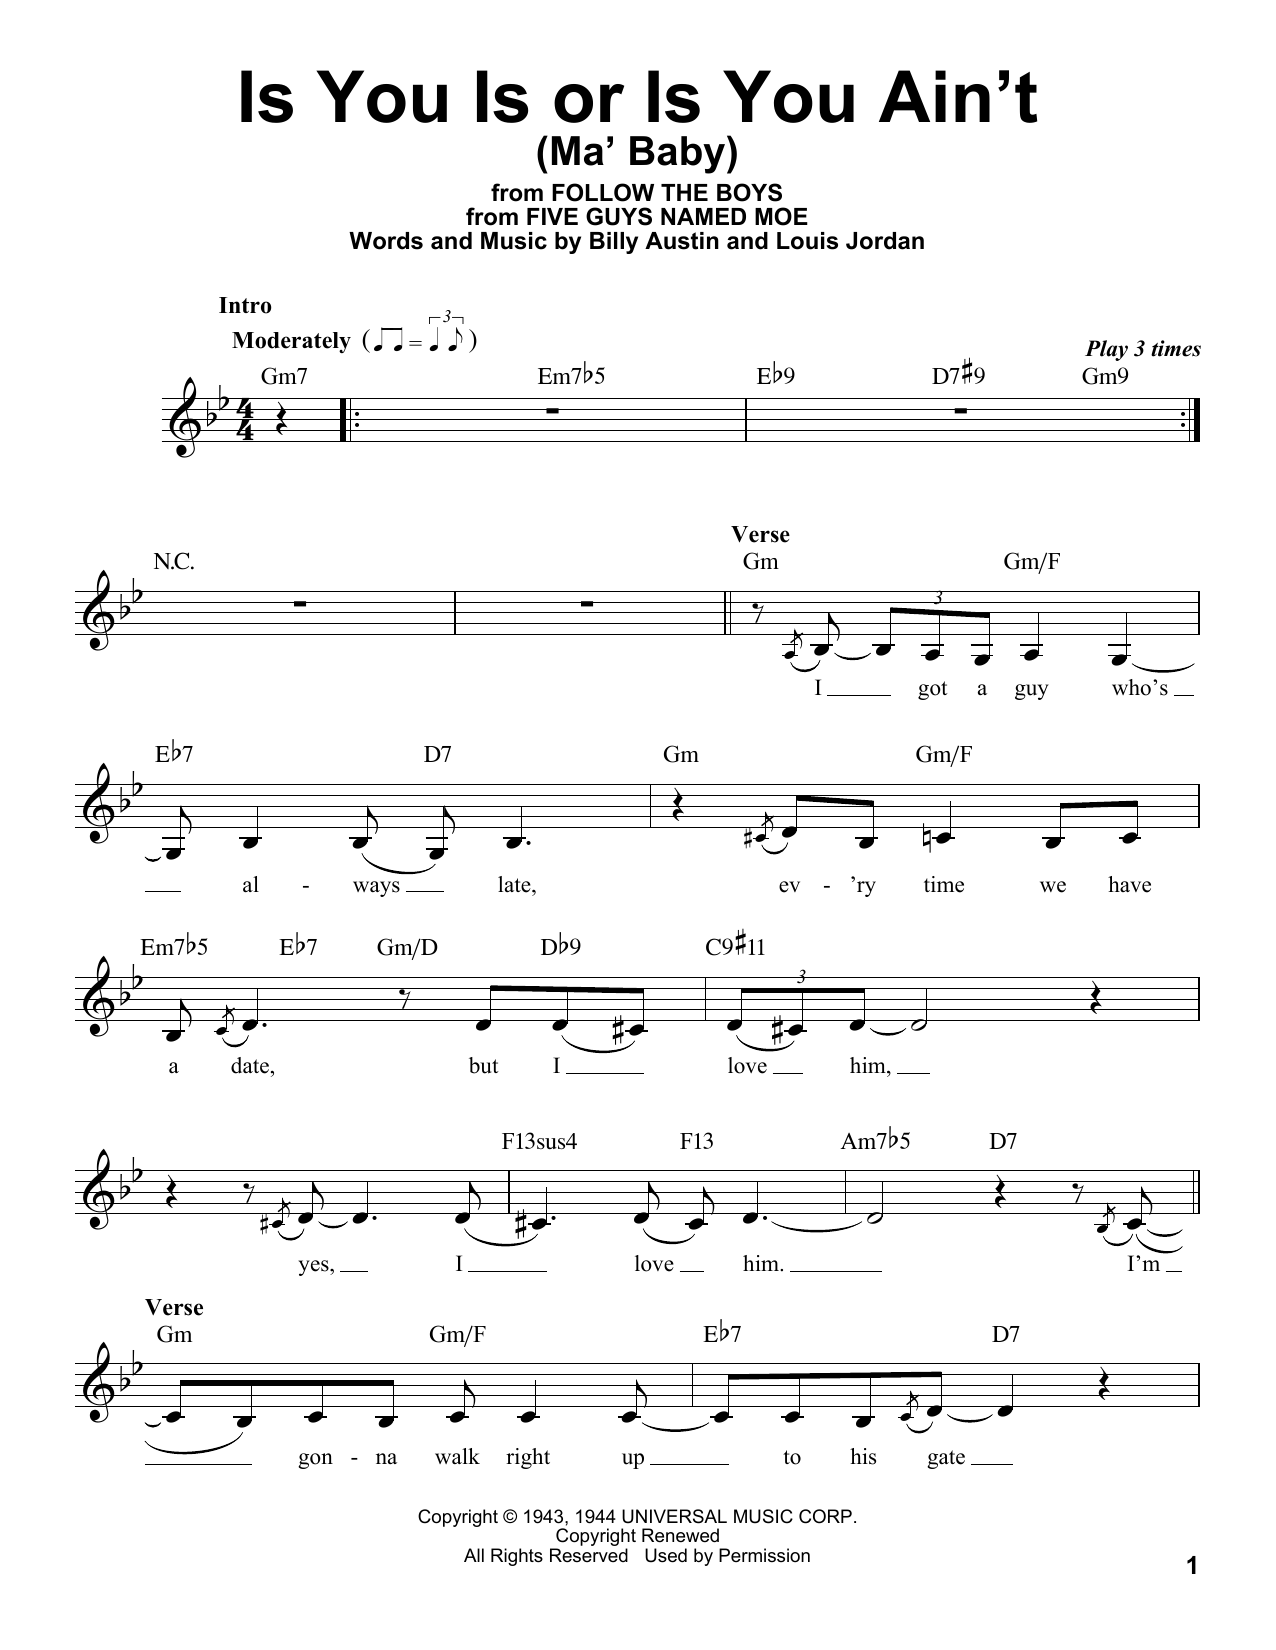 Billy Austin Is You Is, Or Is You Ain't (Ma' Baby) sheet music notes and chords. Download Printable PDF.